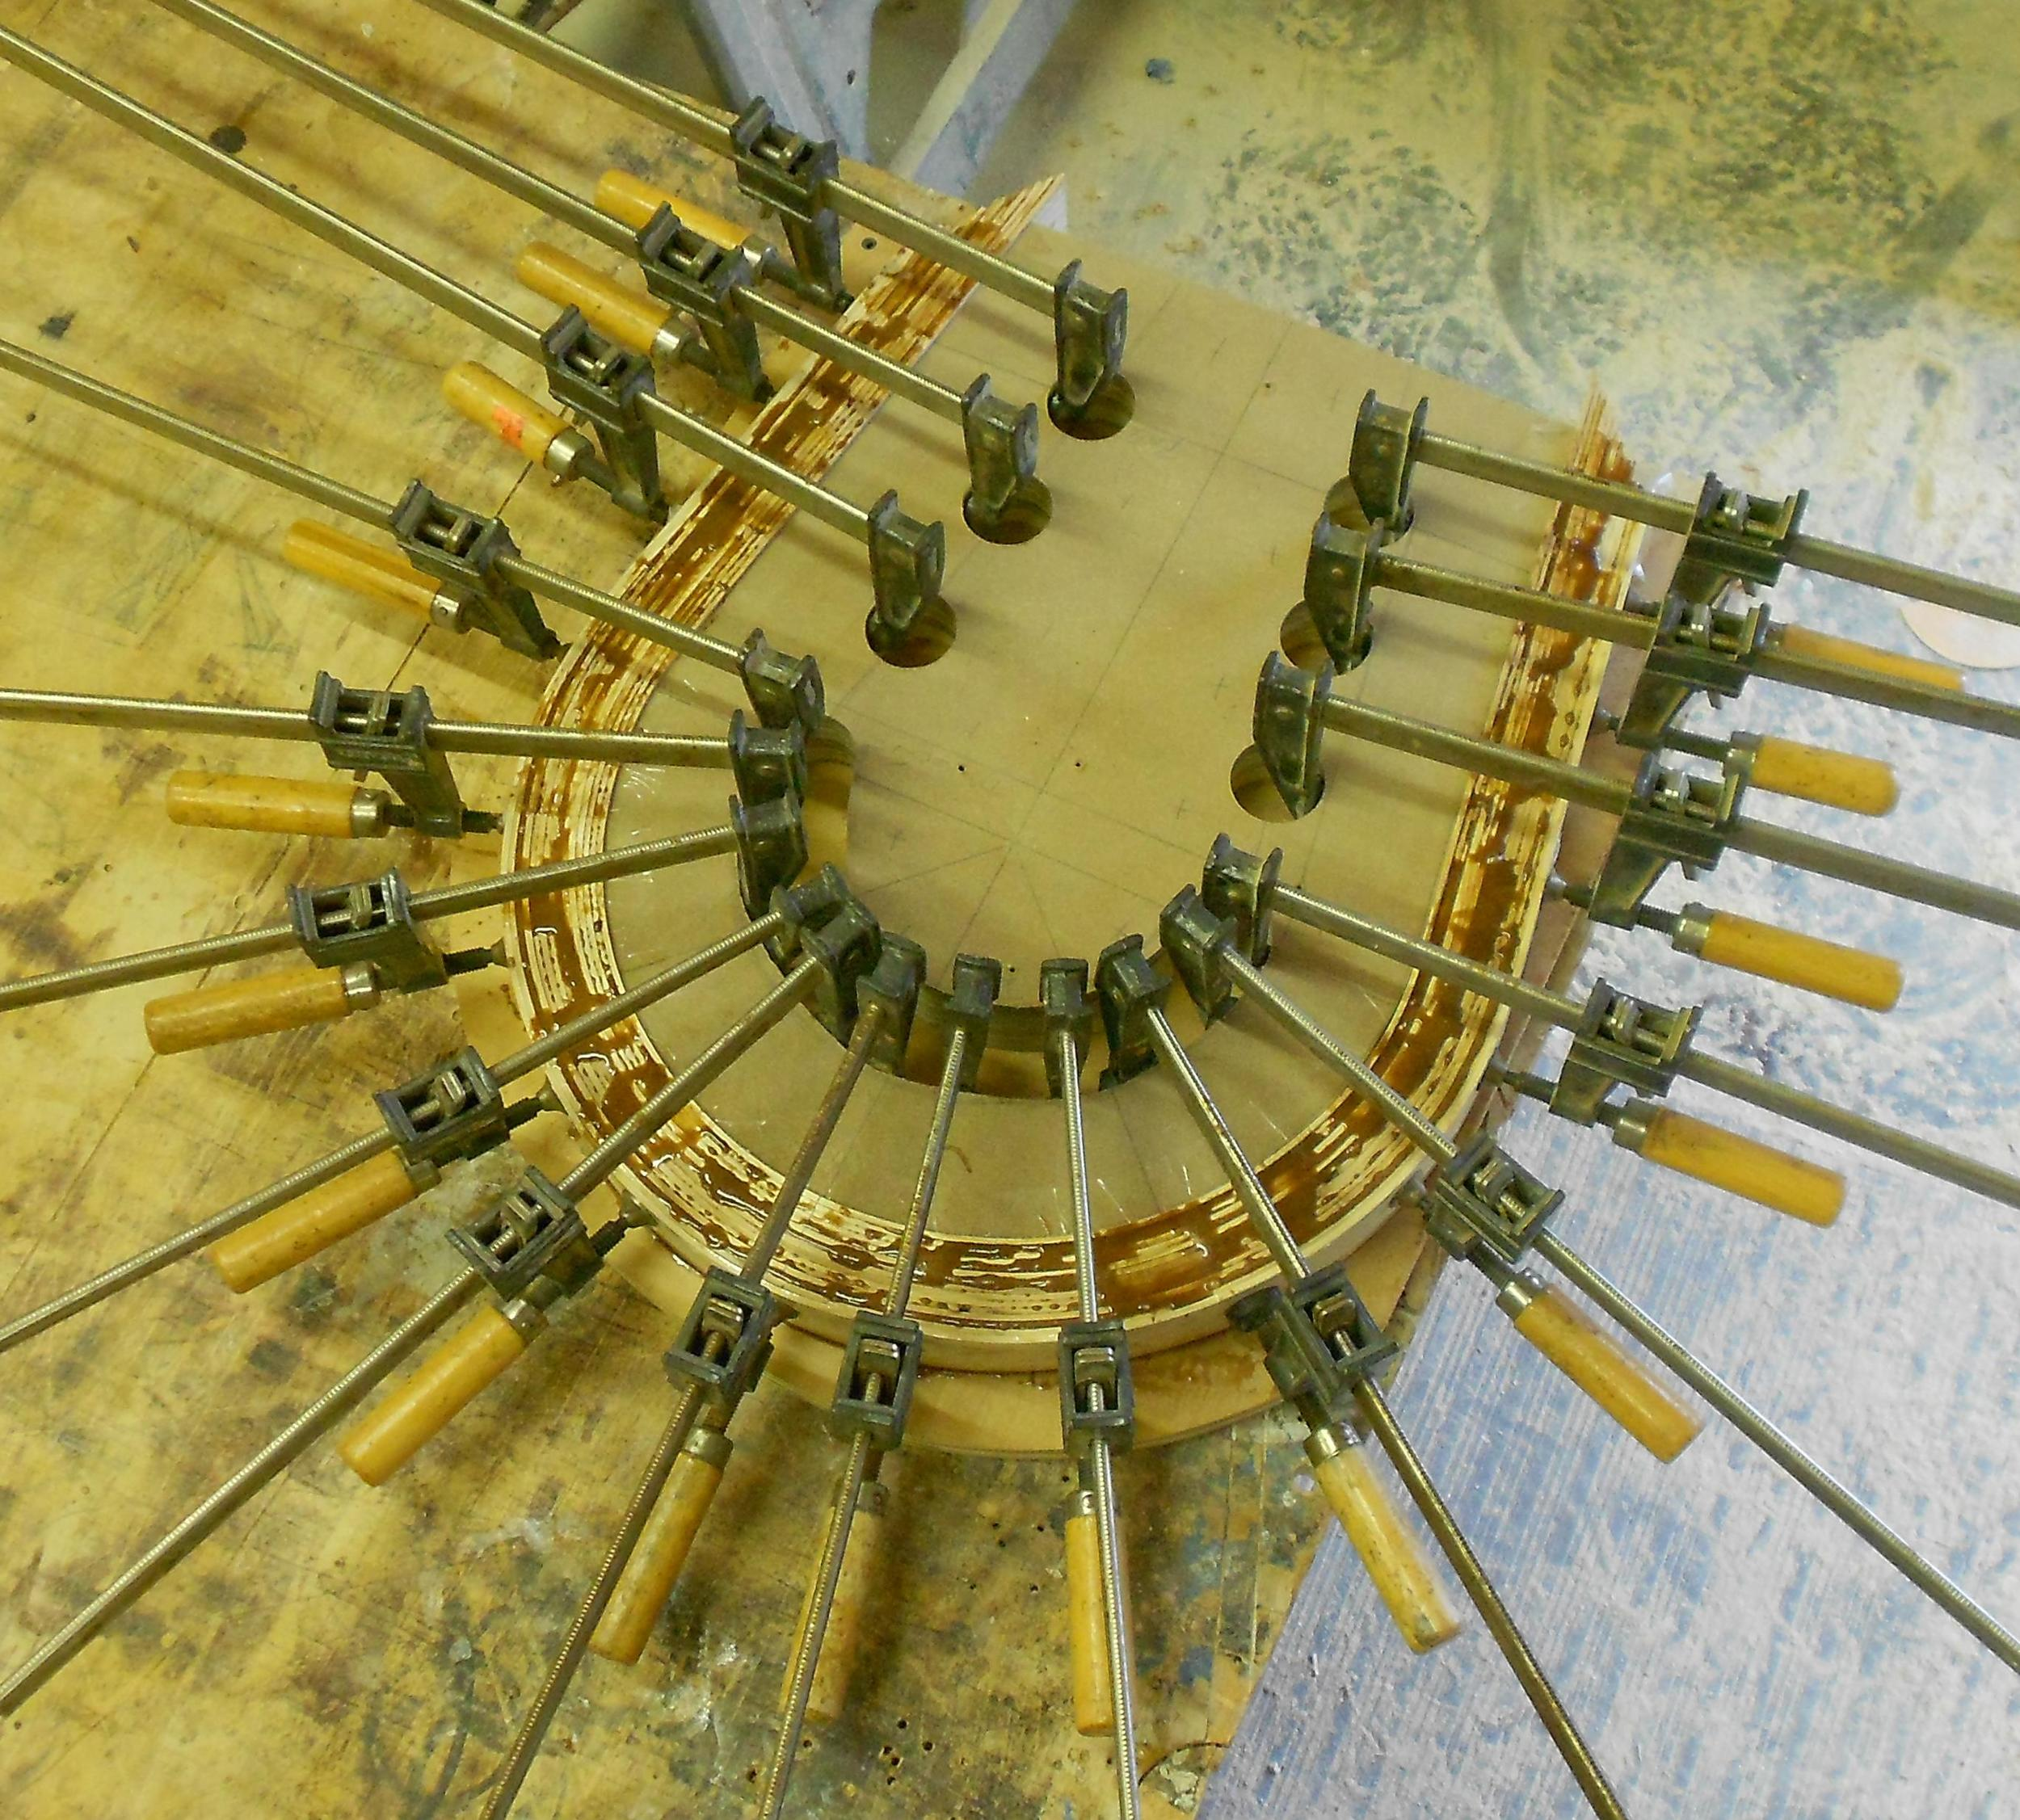 Brockport commission 4 one of the horse shoe bench parts in the glue up jig.jpg